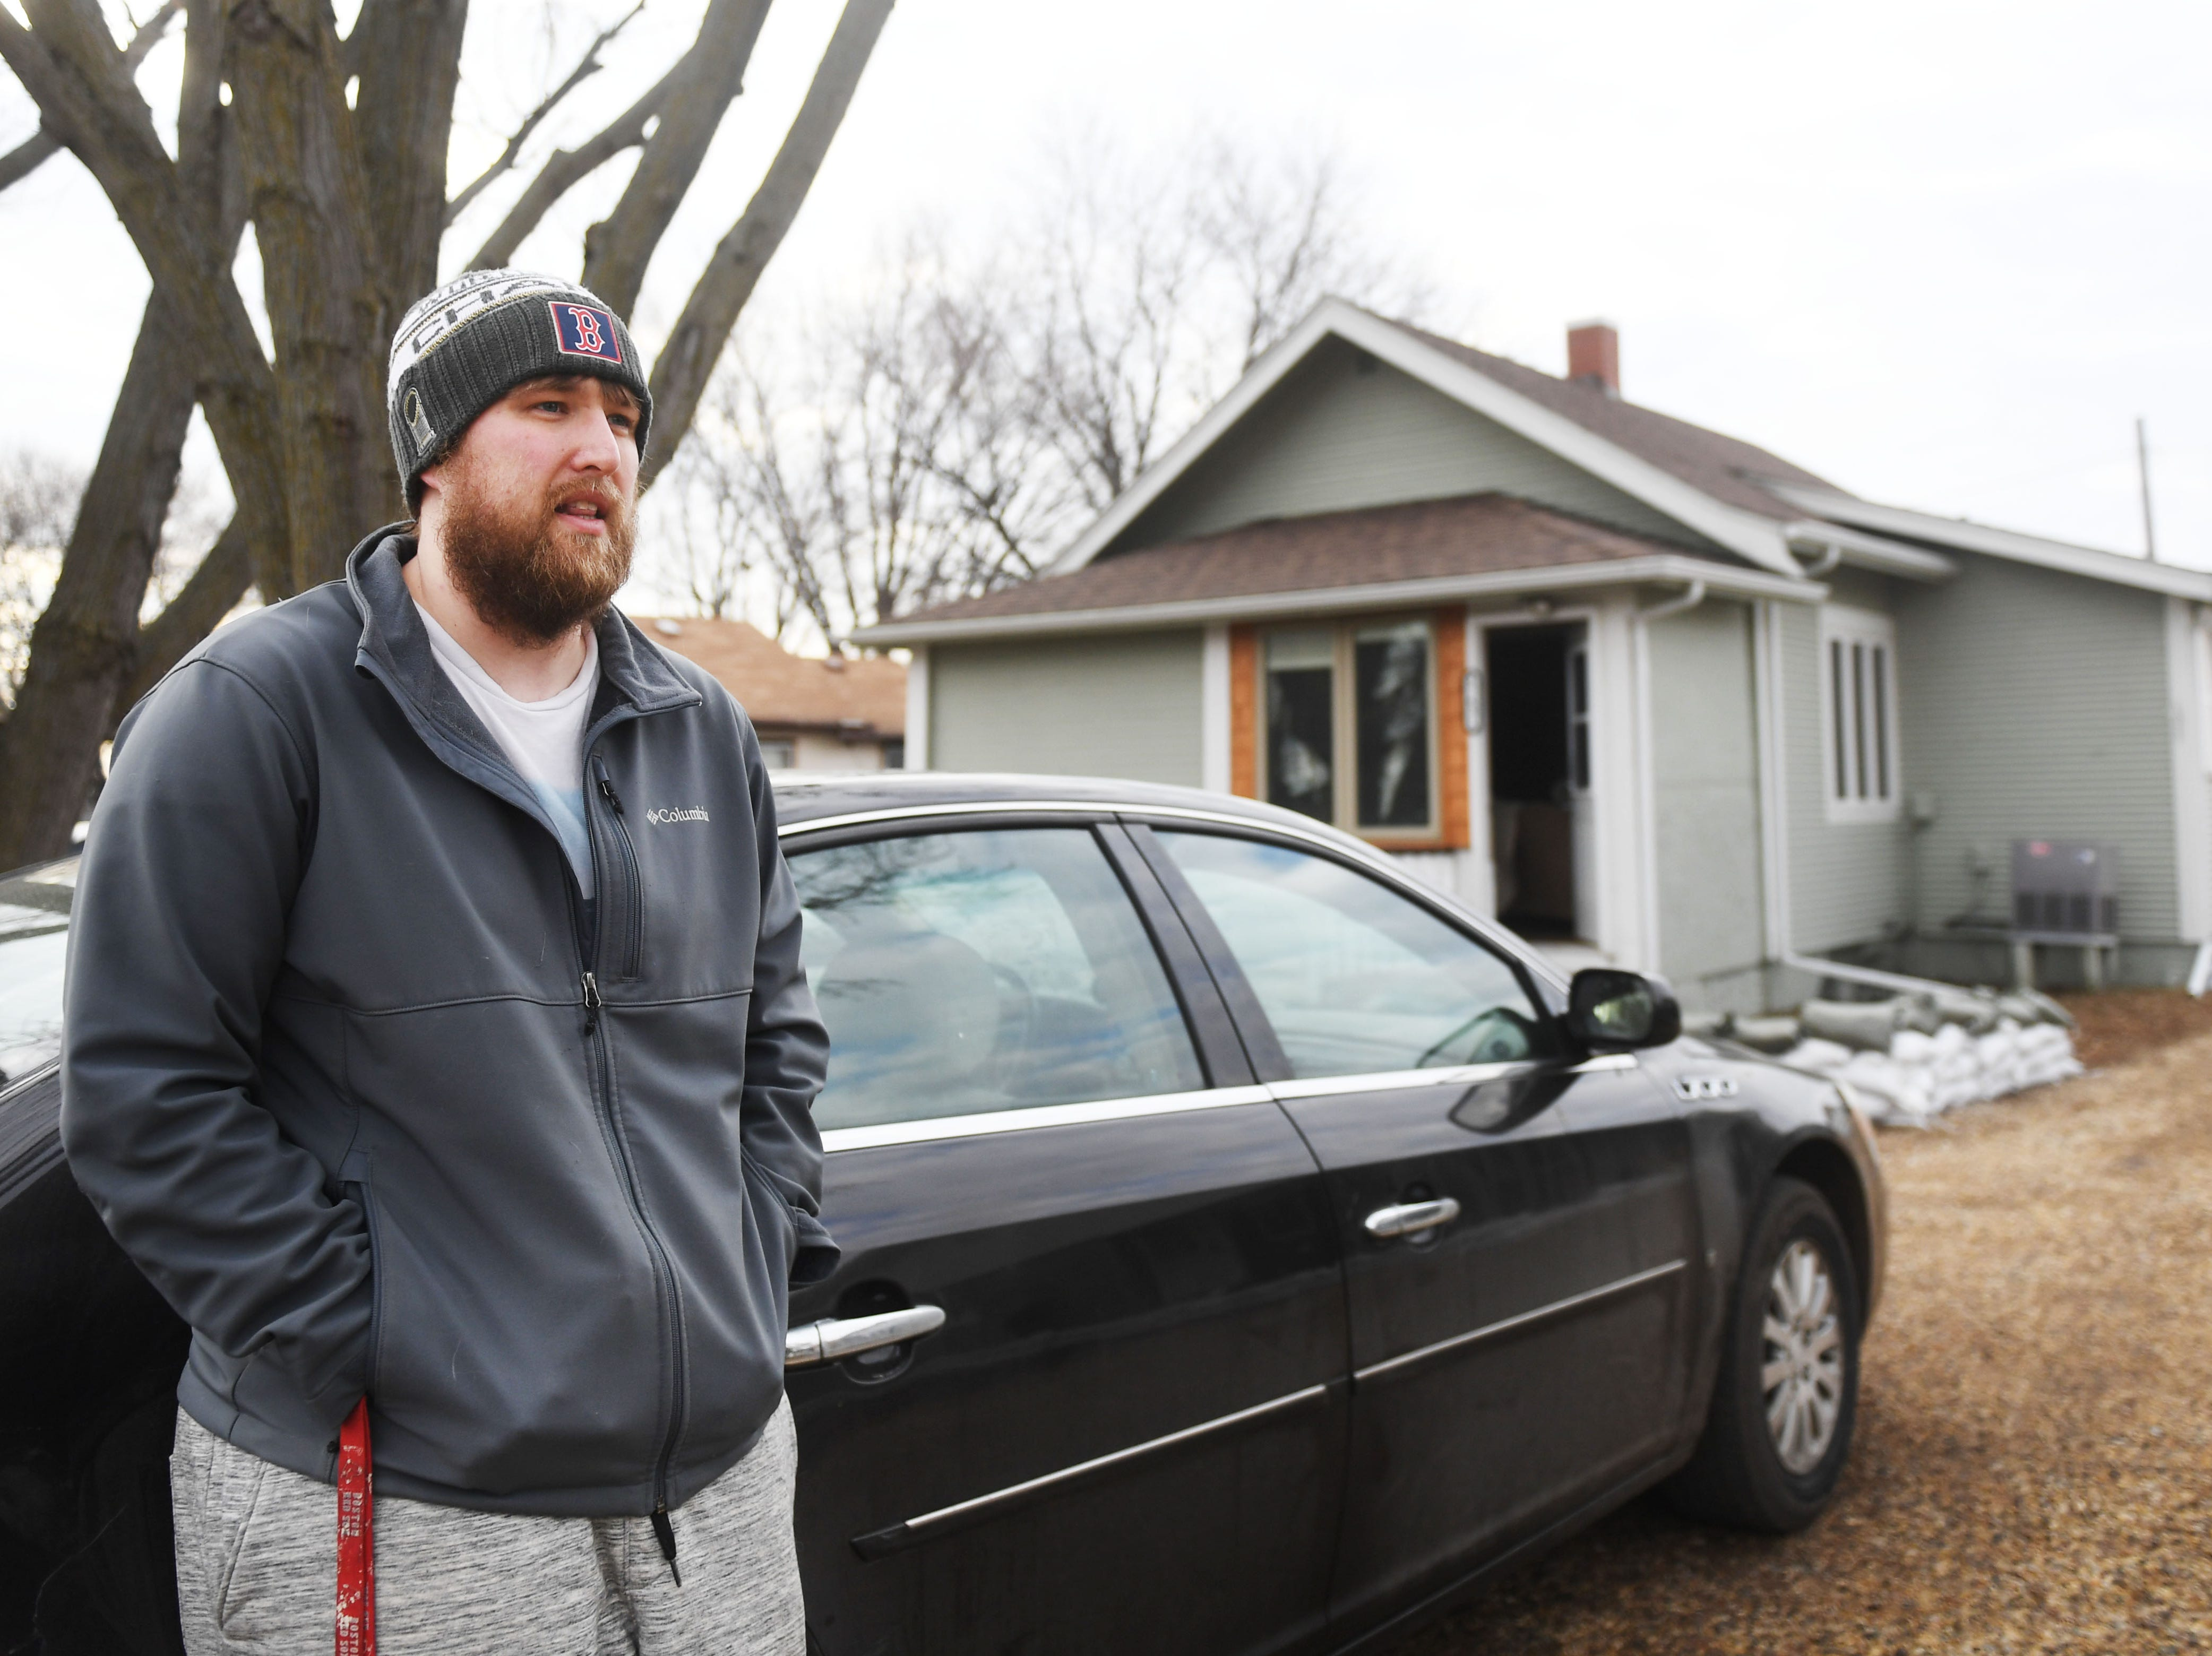 Ben Glanzer talks about evacuating his home in Renner because of flooding Monday, March 25, in Renner, S.D.  Glanzer said just the structure is insured. He grabbed everything of importance just in case.